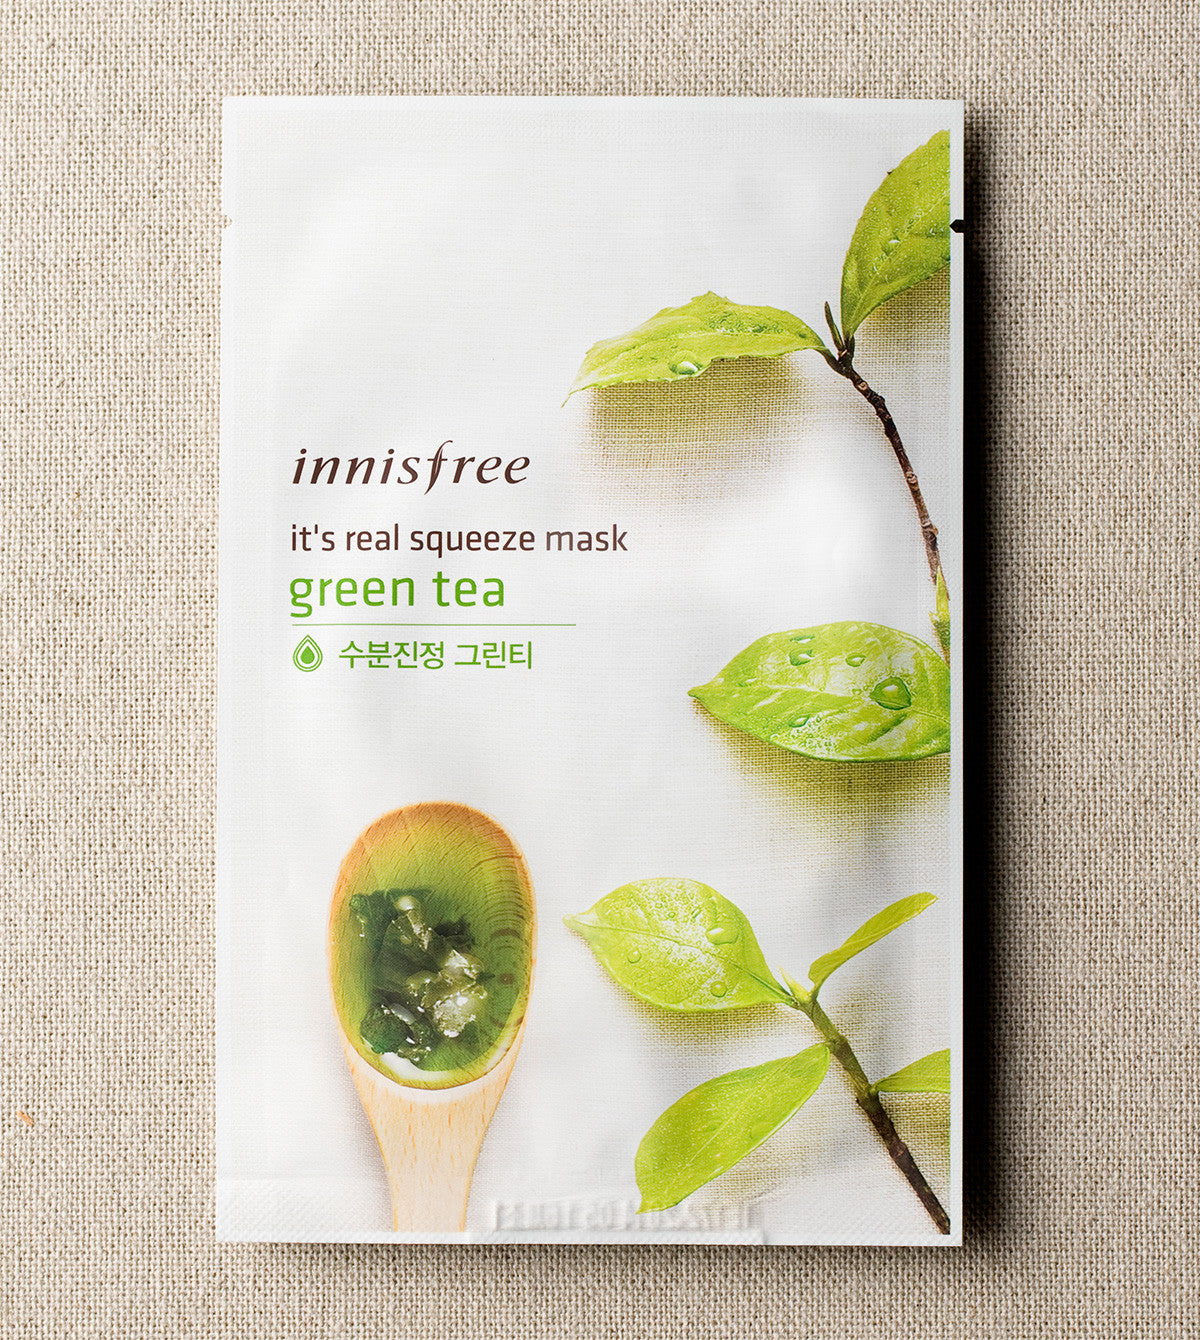 IT'S REAL SQUEEZE MASK - GREEN TEA